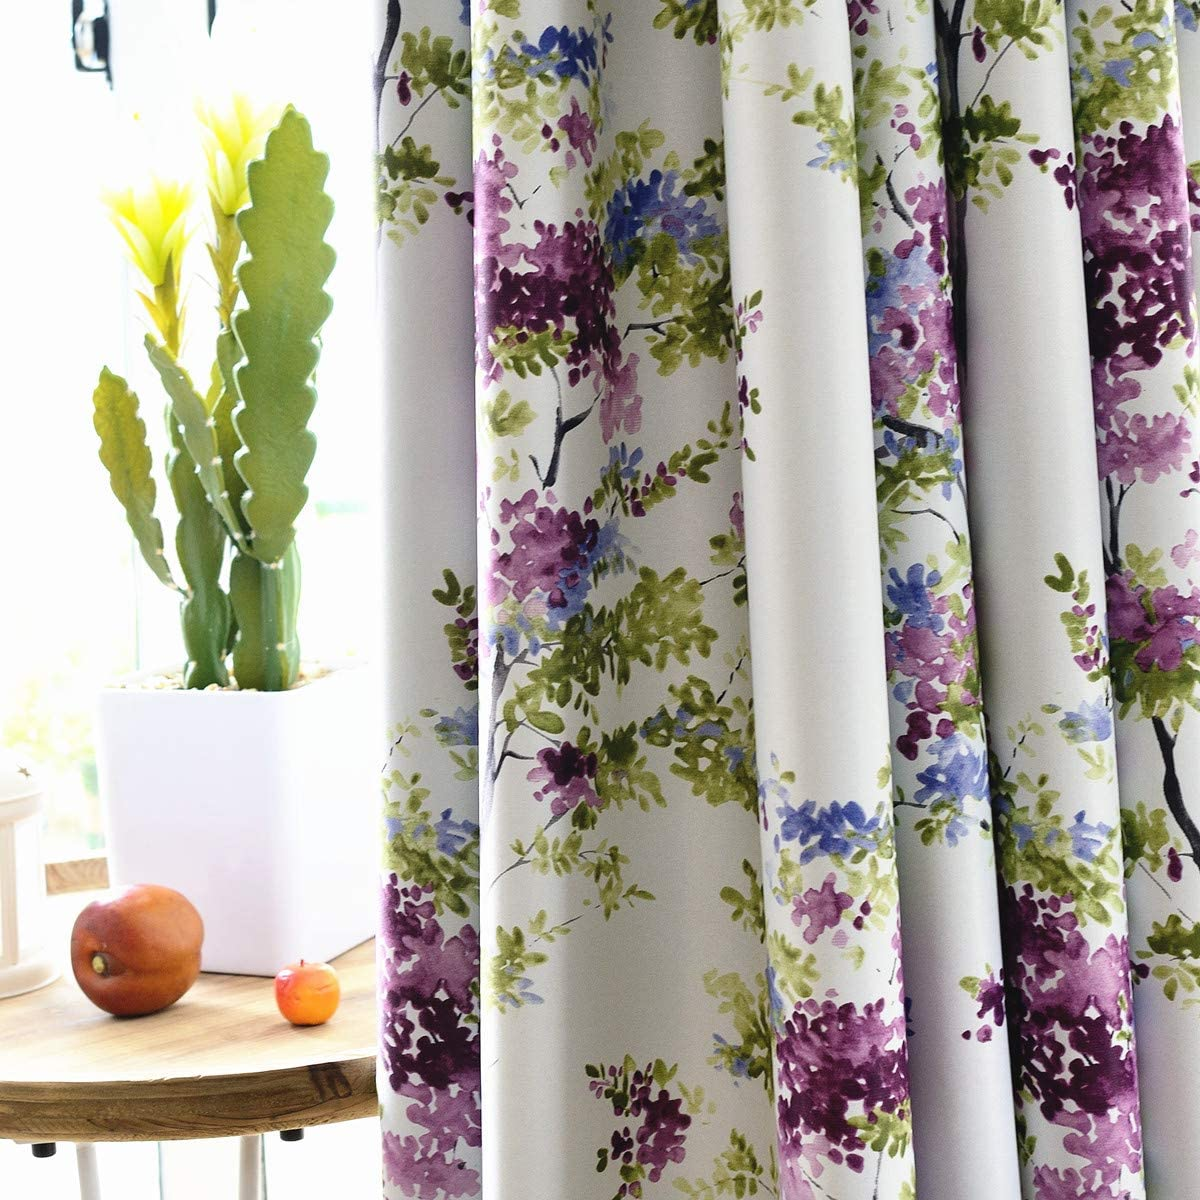 MYRU 2 Panels Set Purple Flower Curtains for Living Room Green Leaves Blackout Curtains for Bedroom 2 x 54 by 84 Inch,Purple